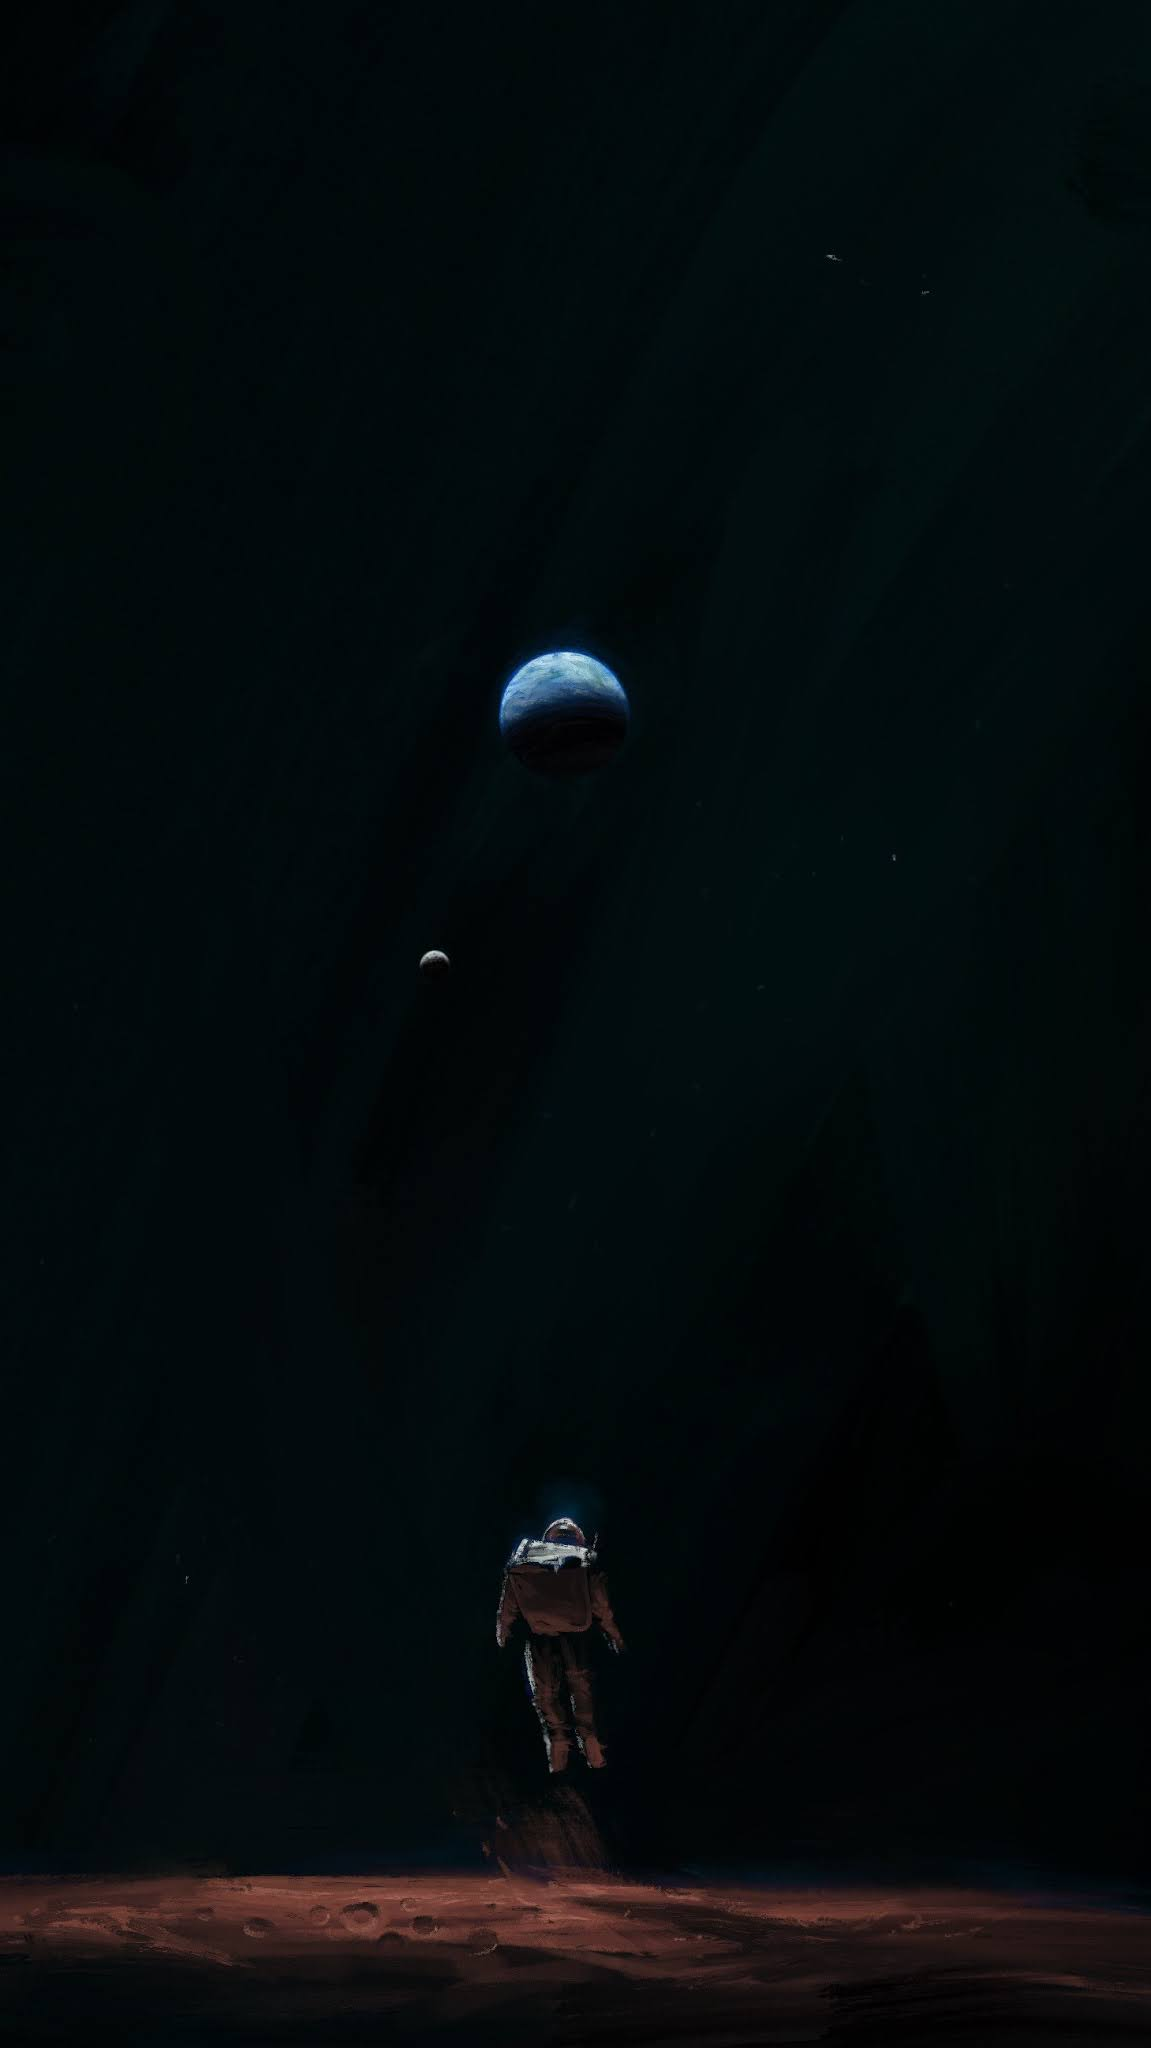 ASTRONAUT WALLPAPER FOR IPHONE